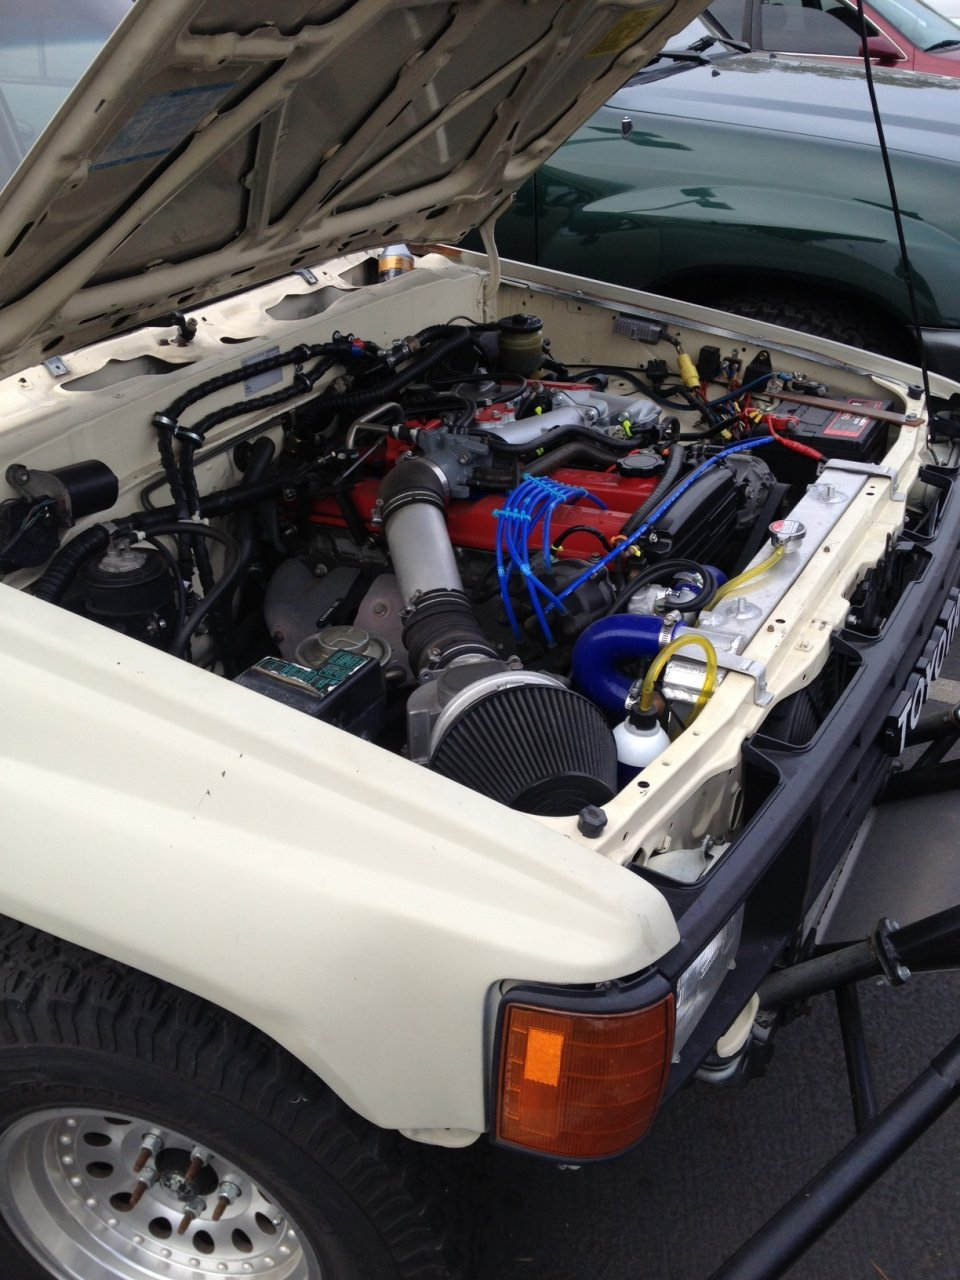 For Sale - 1985 Toyota pickup 2wd with 7MGE Supra engine | IH8MUD Forum